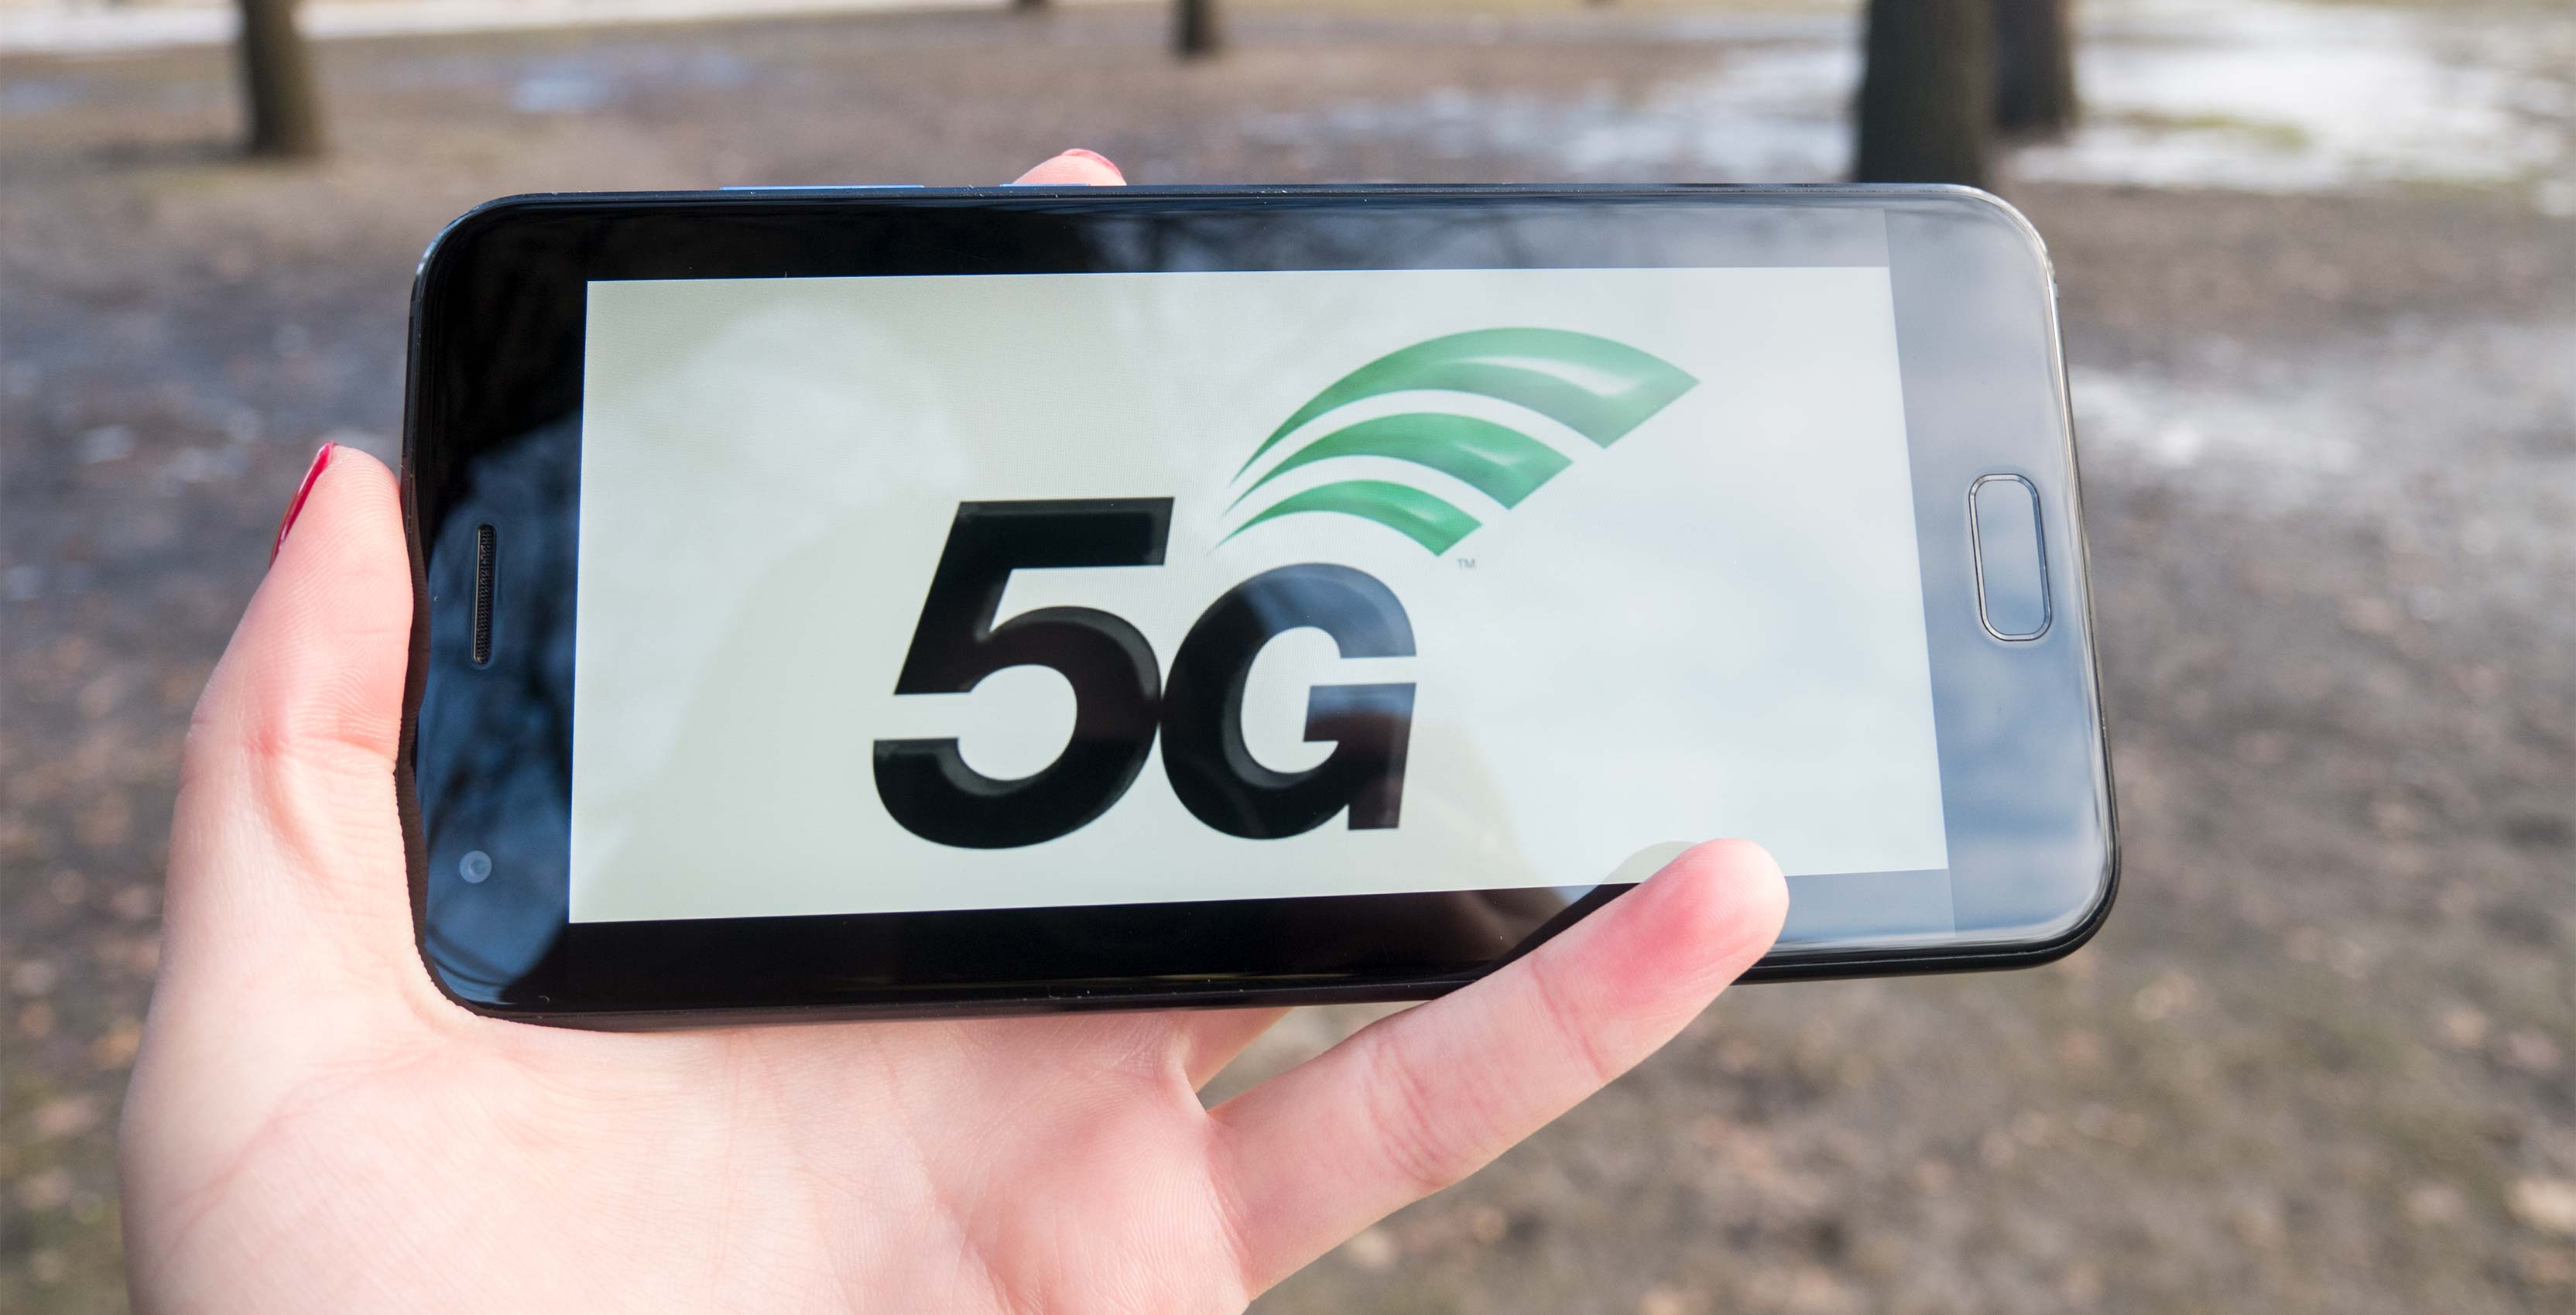 Everything you need to know about 5g in canada in future segments well explore how 5g will transform various aspects of life in canada including automotive technology rural connectivity solutioingenieria